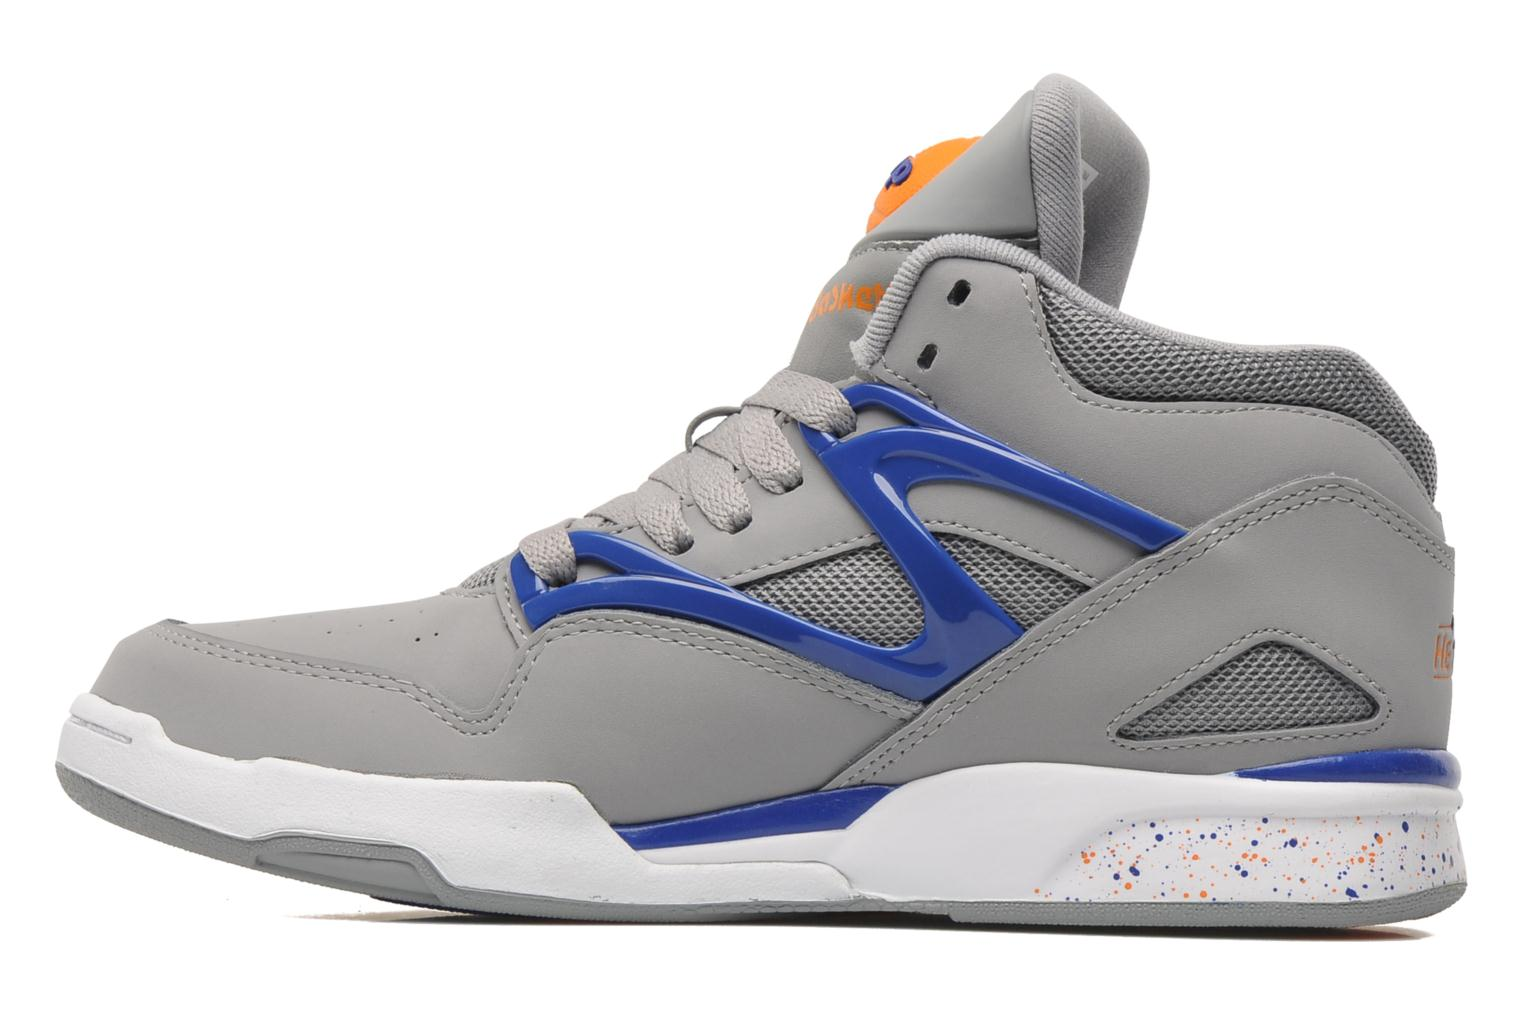 reebok pump omni lite trainers in grey at 178405. Black Bedroom Furniture Sets. Home Design Ideas